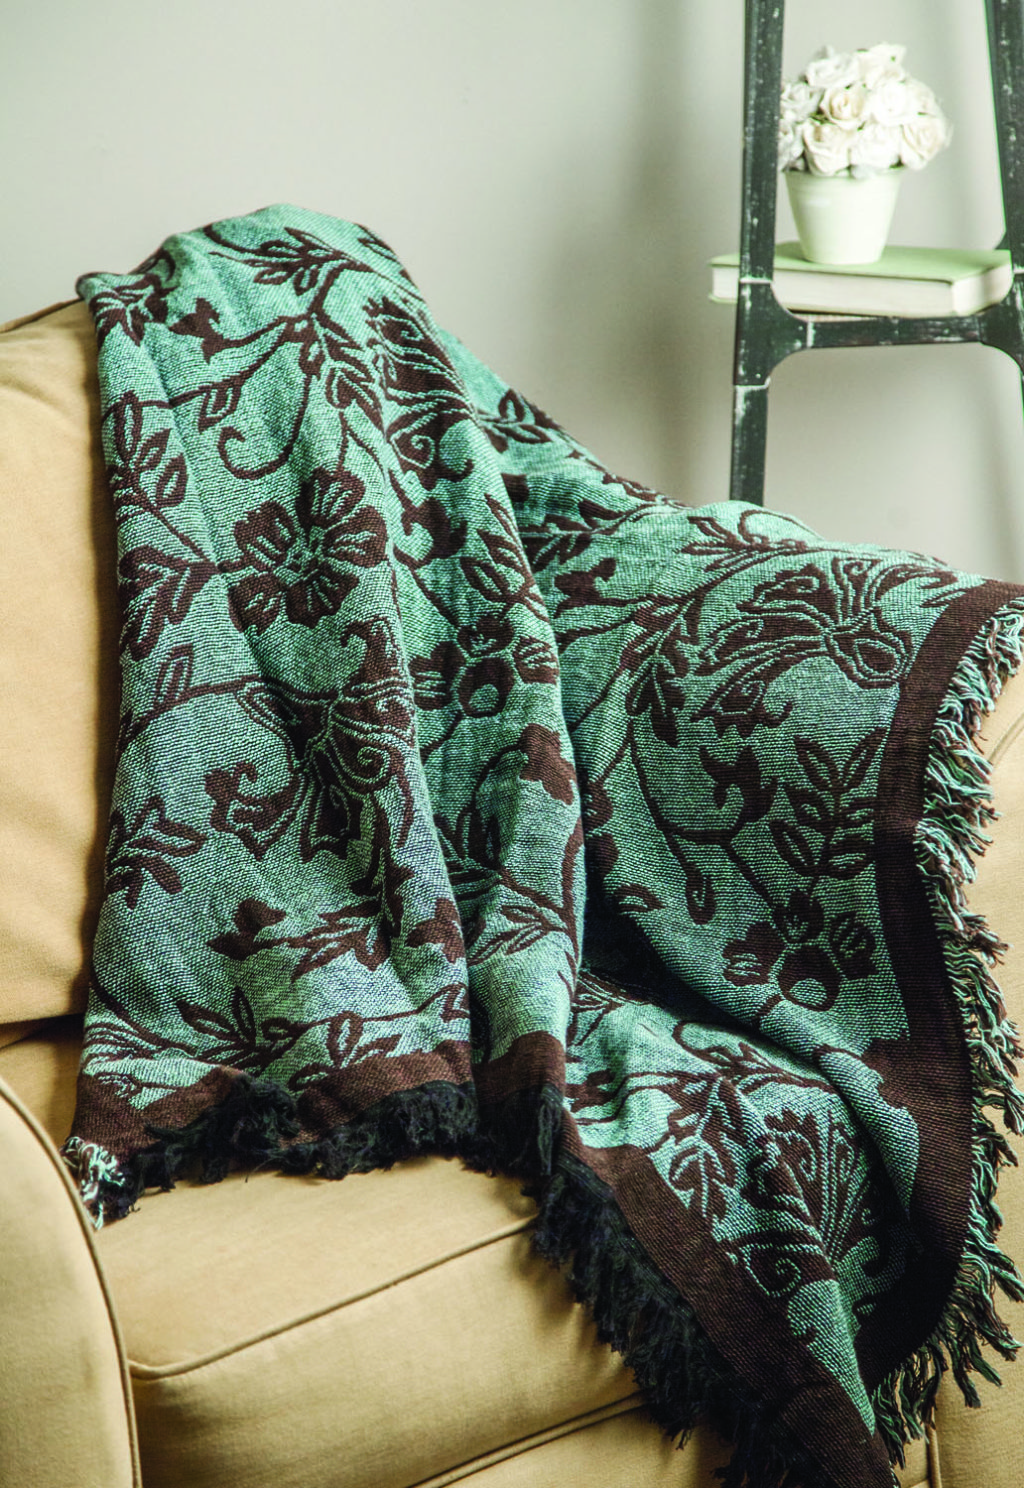 Tapestry throws